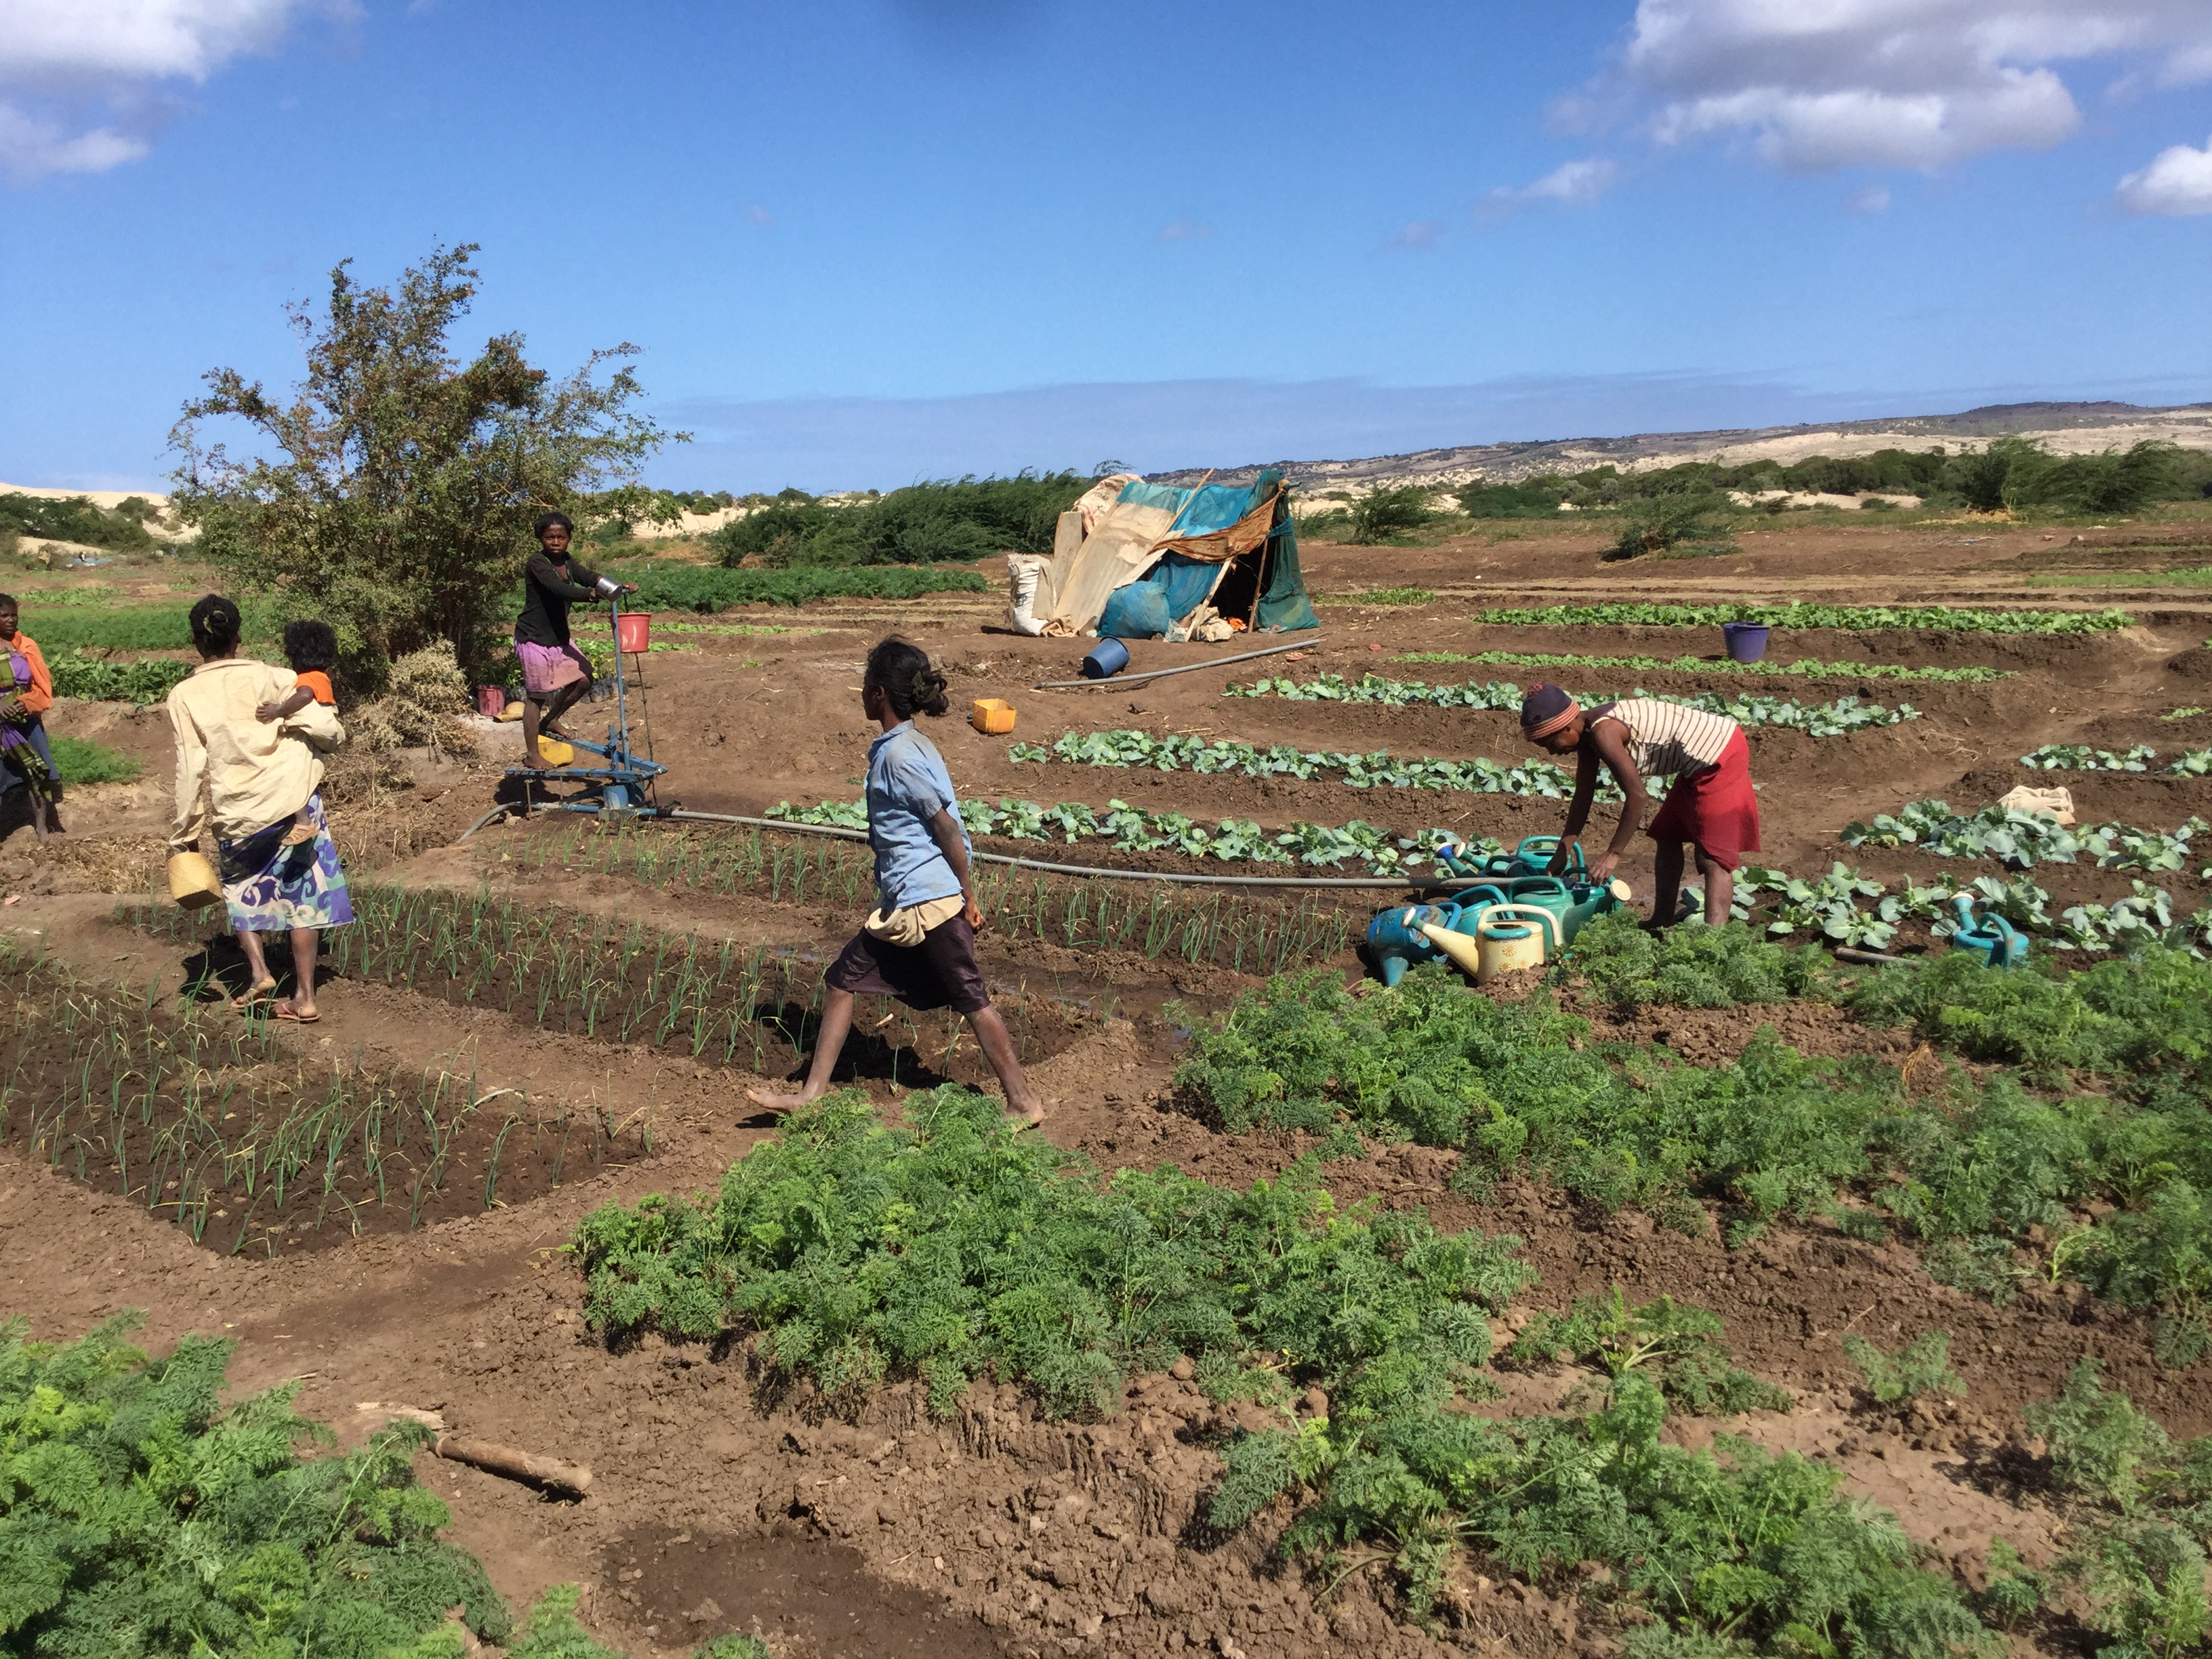 Women farmers in Amboasary tend to a cleared communal vegetable field through a World Food Programme food for assets activity. / Christopher LaFargue, USAID